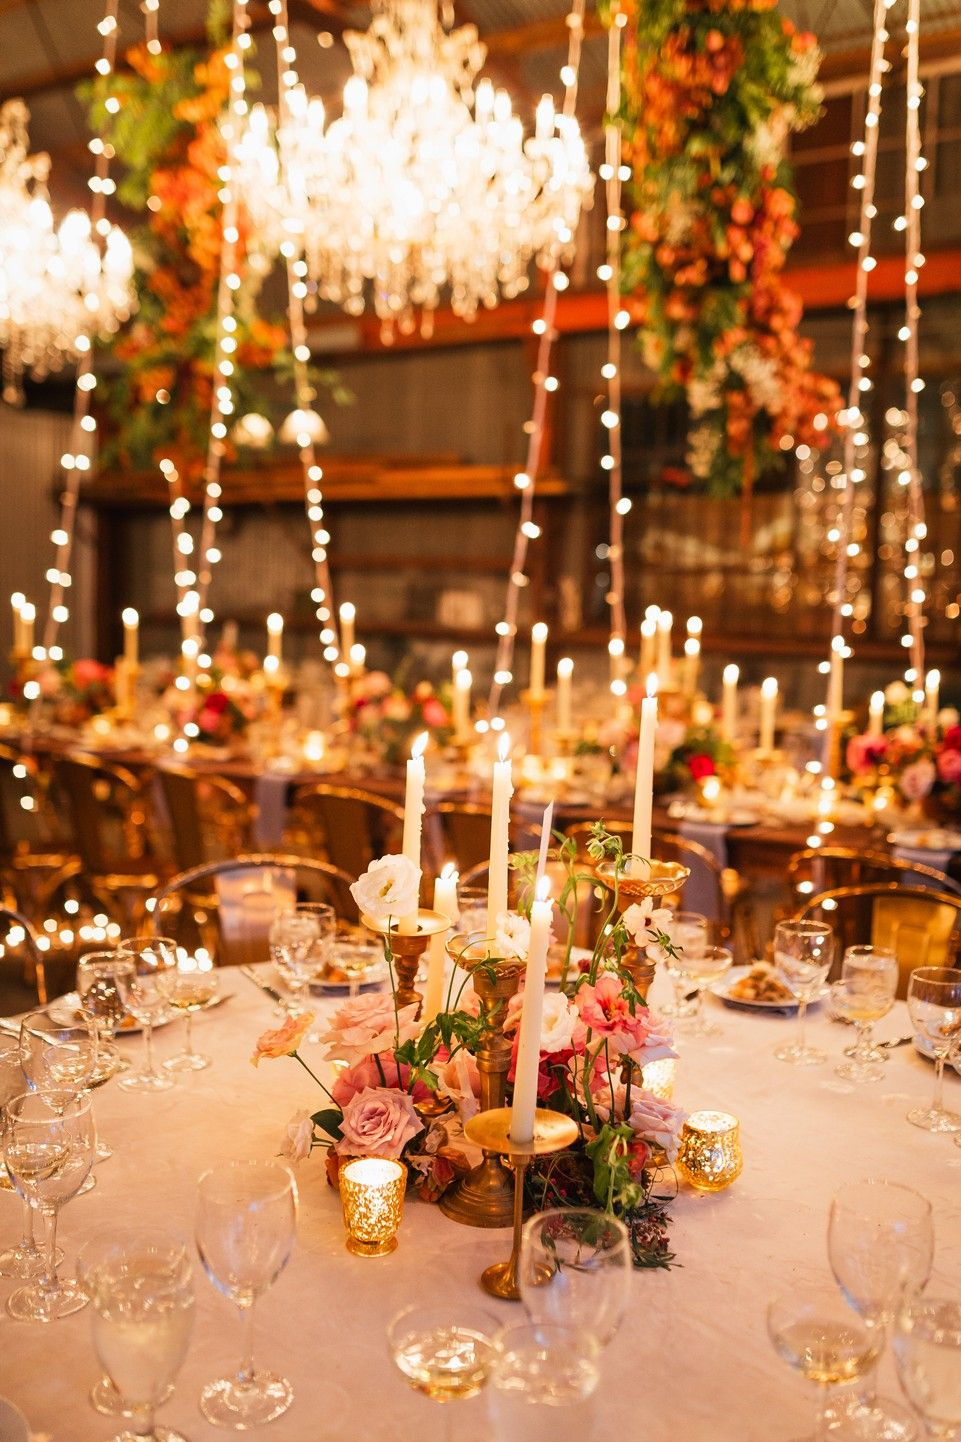 Pin On Receptions And Parties Lovegood Wedding Event Rentals